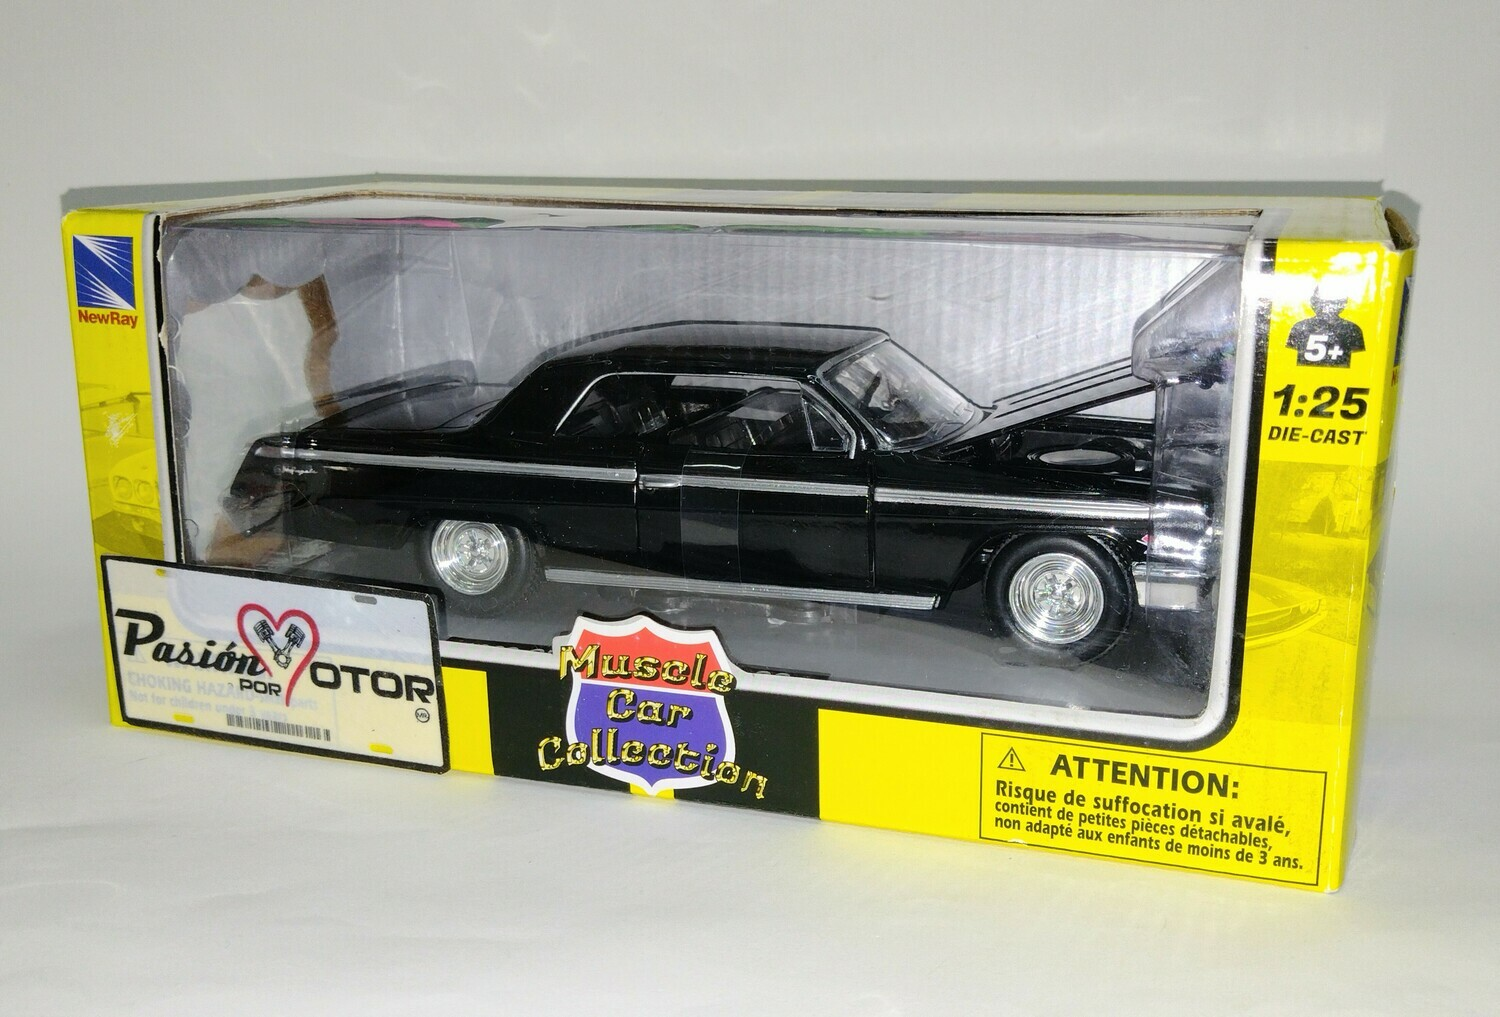 New Ray 1:25 Chevrolet Impala SS Coupe 1962 NegroMuscle Car Collection Con Caja 1:24